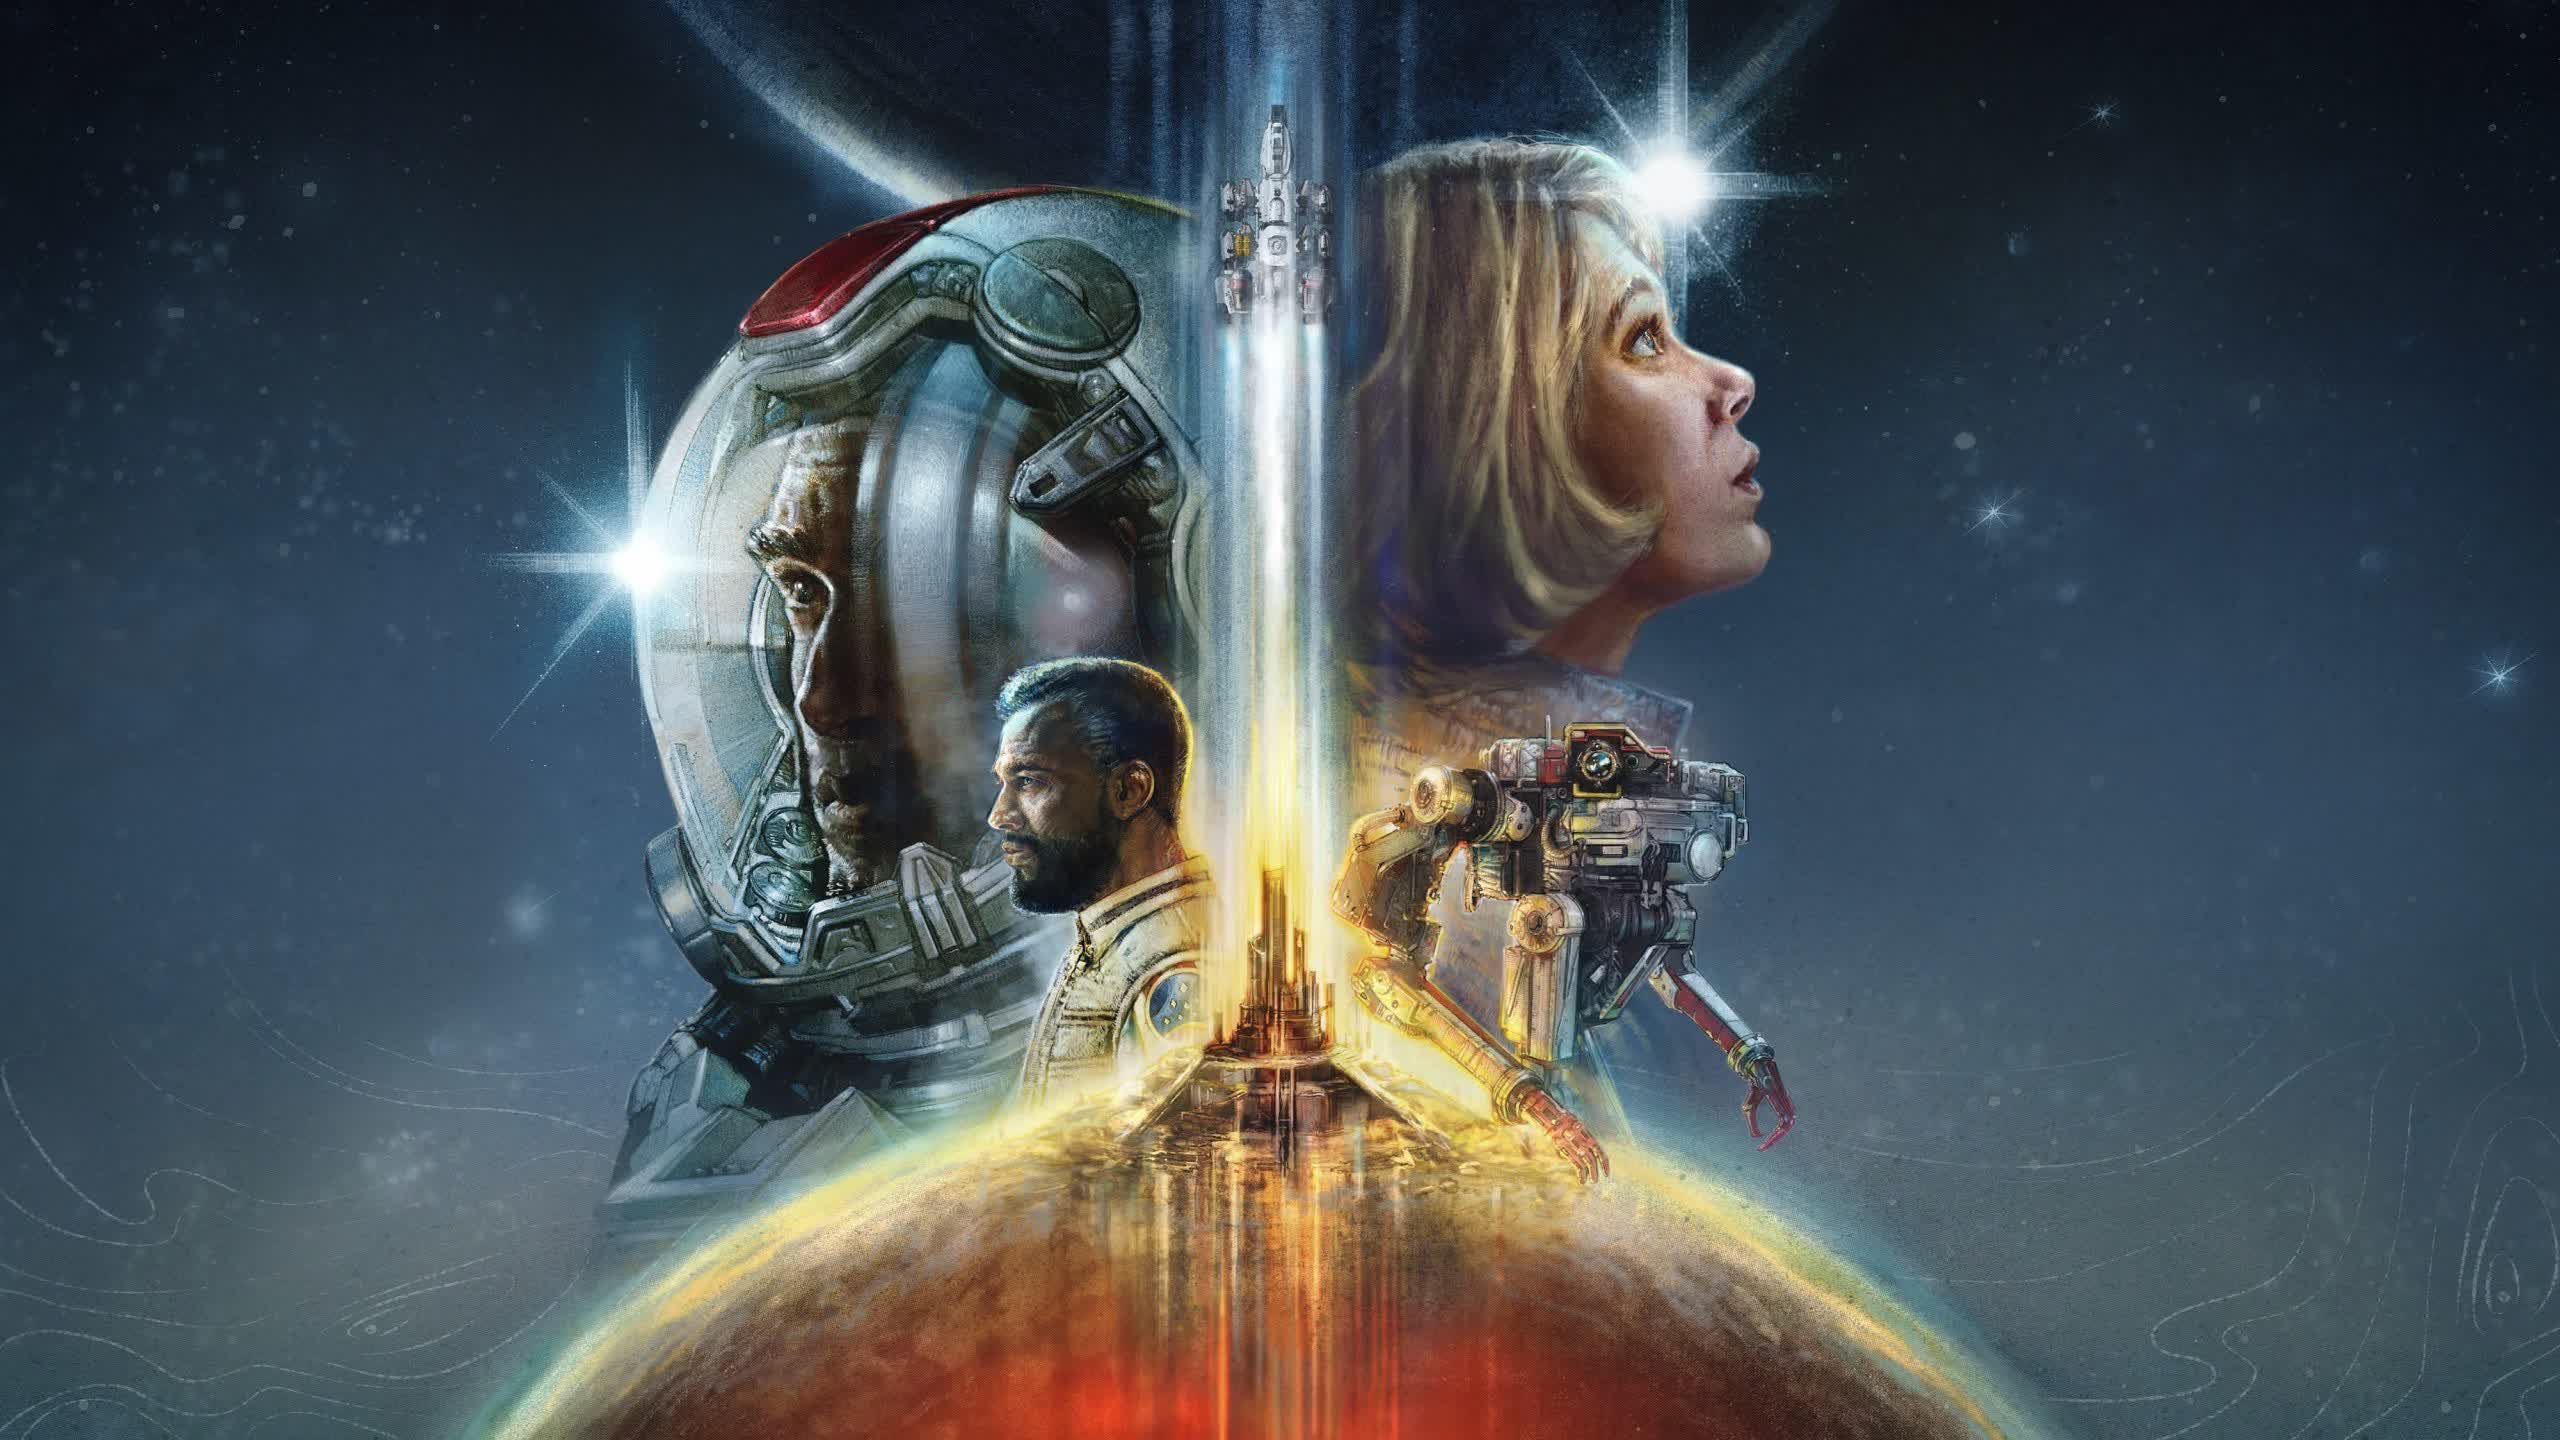 Bethesda exec Pete Hines apologized to PS5 owners for Starfield's Xbox exclusivity